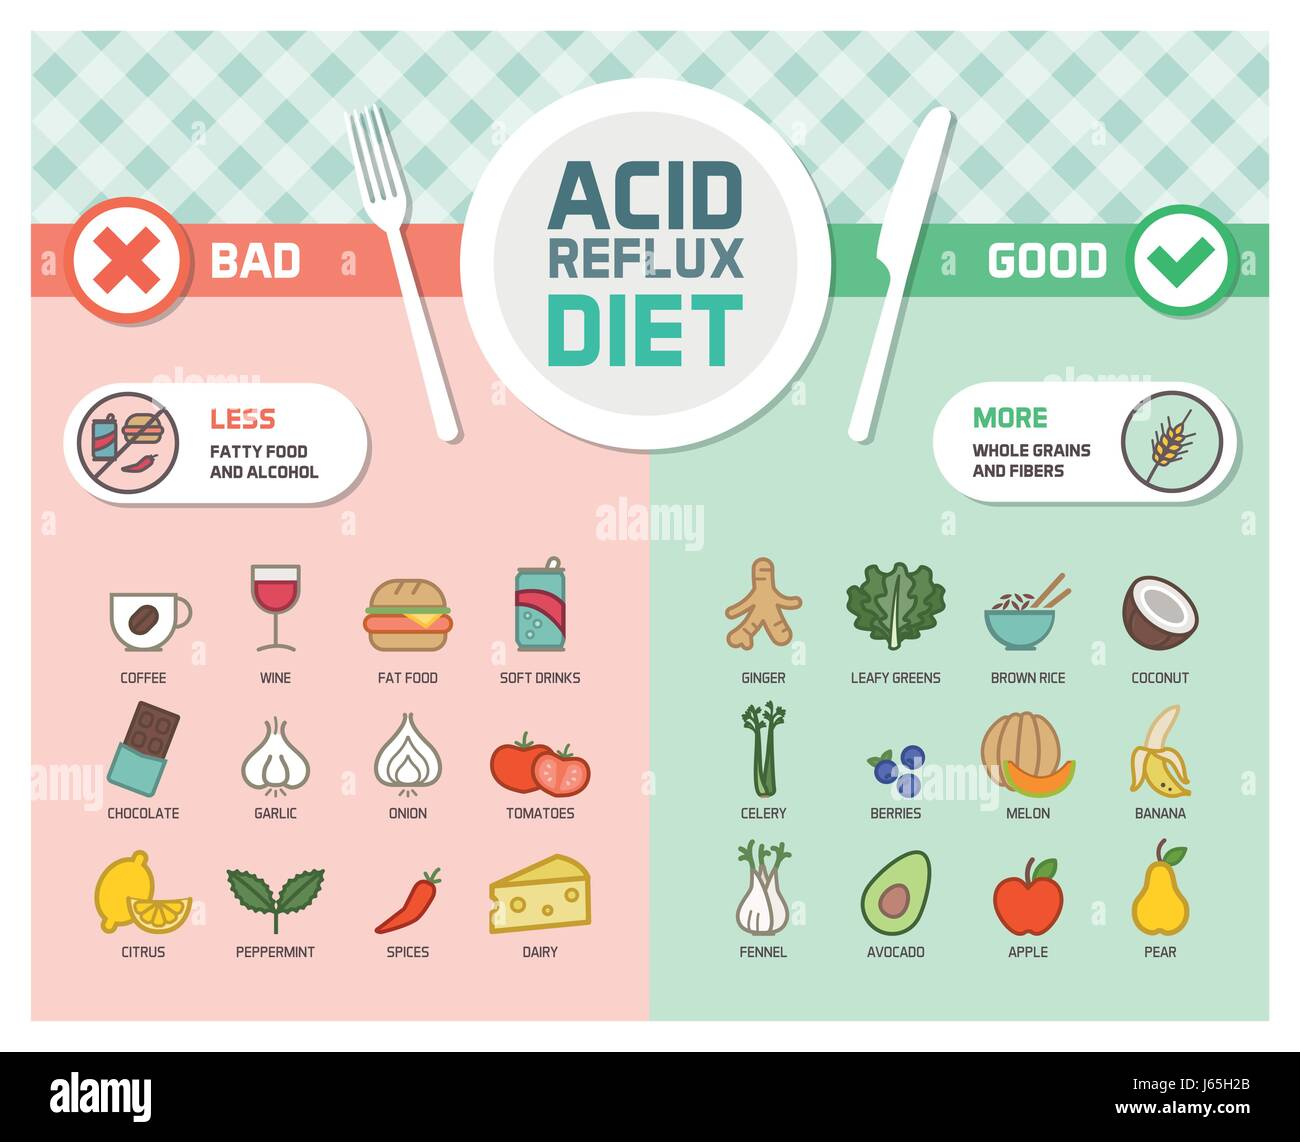 acid reflux and gerd symptoms prevention diet with trigger foods and